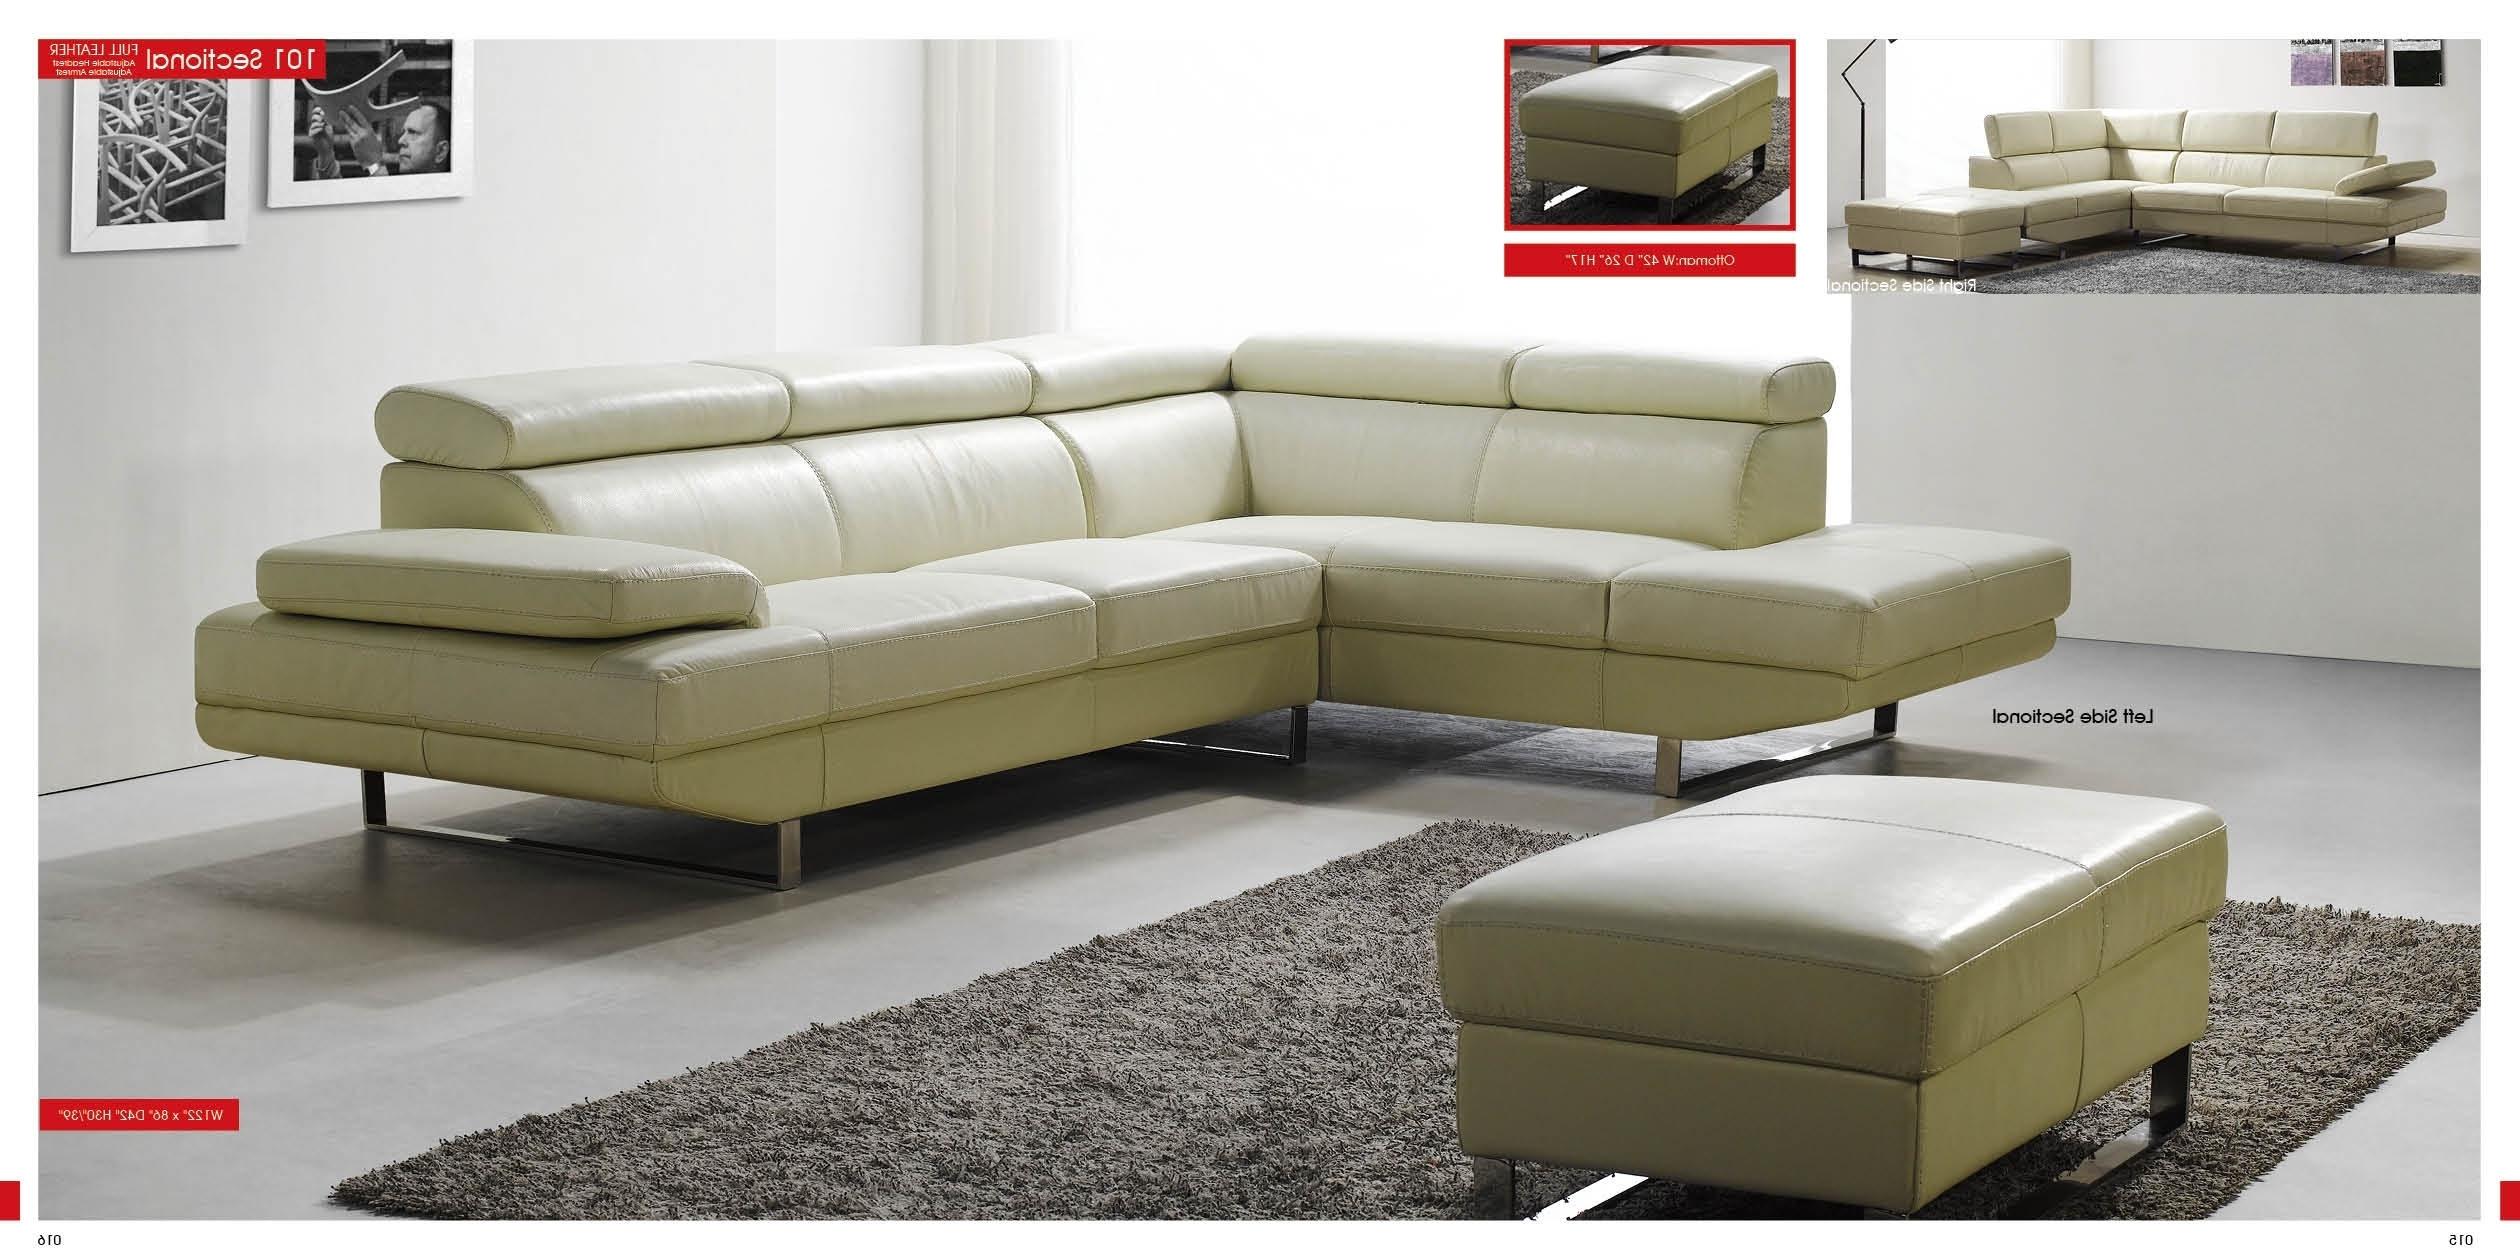 Well Known Sleek Sectional Sofas With Regard To Collection Sleek Sectional Sofa – Mediasupload (View 18 of 20)